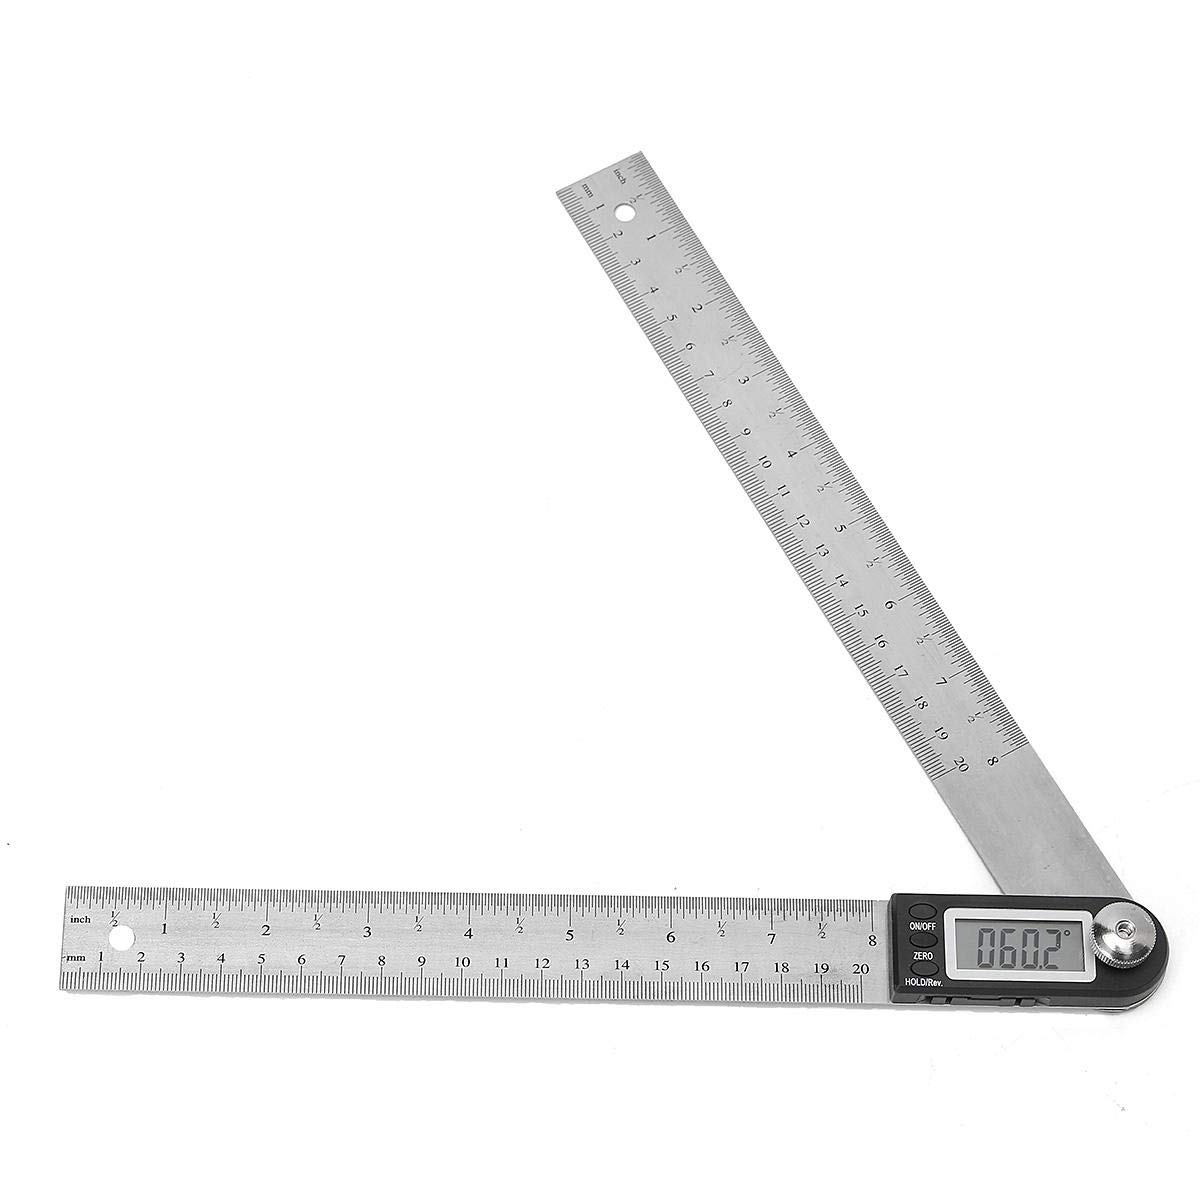 Precision Metal Ruler for Accurate Easy to Read Measurements for Office Engineering Drawings with Conversion Tables 30cm 12inch Geepas Stainless Steel Ruler